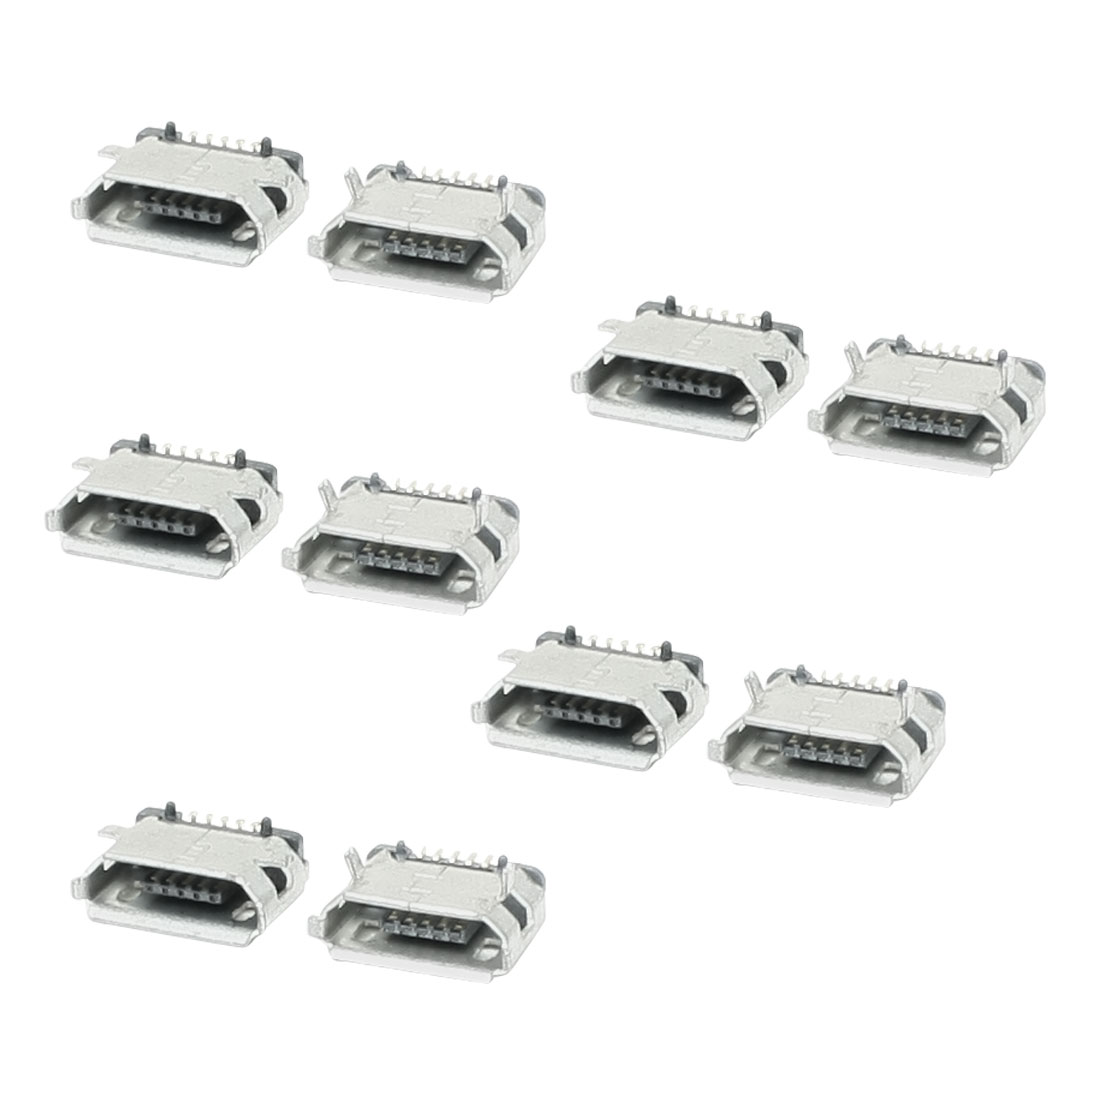 Replacement 10 Pcs Micro USB Data Charging Port Connector for Nokia C7